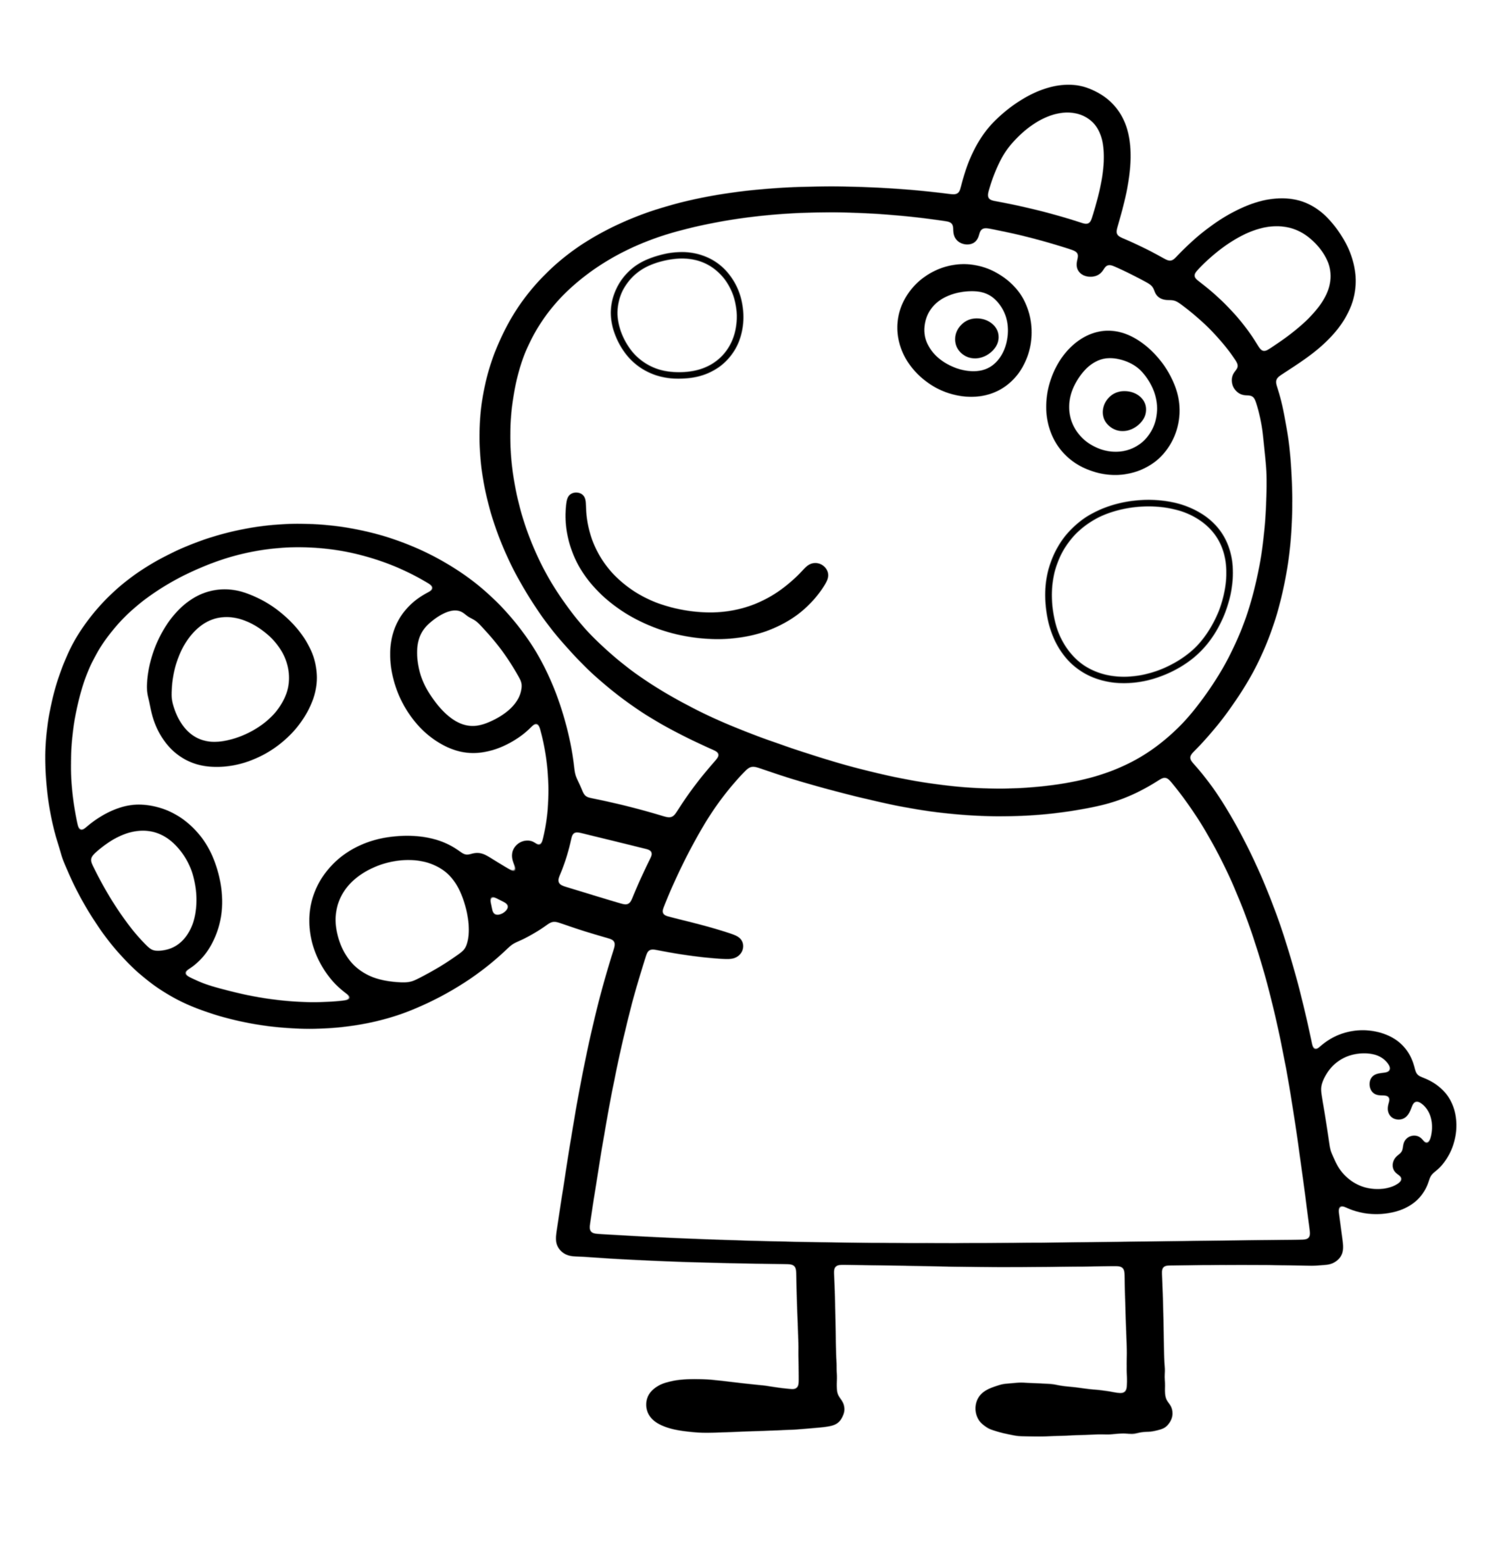 1500x1549 Beautiful Suzy Sheep Peppa Pig Coloring Pages With Peppa Pig